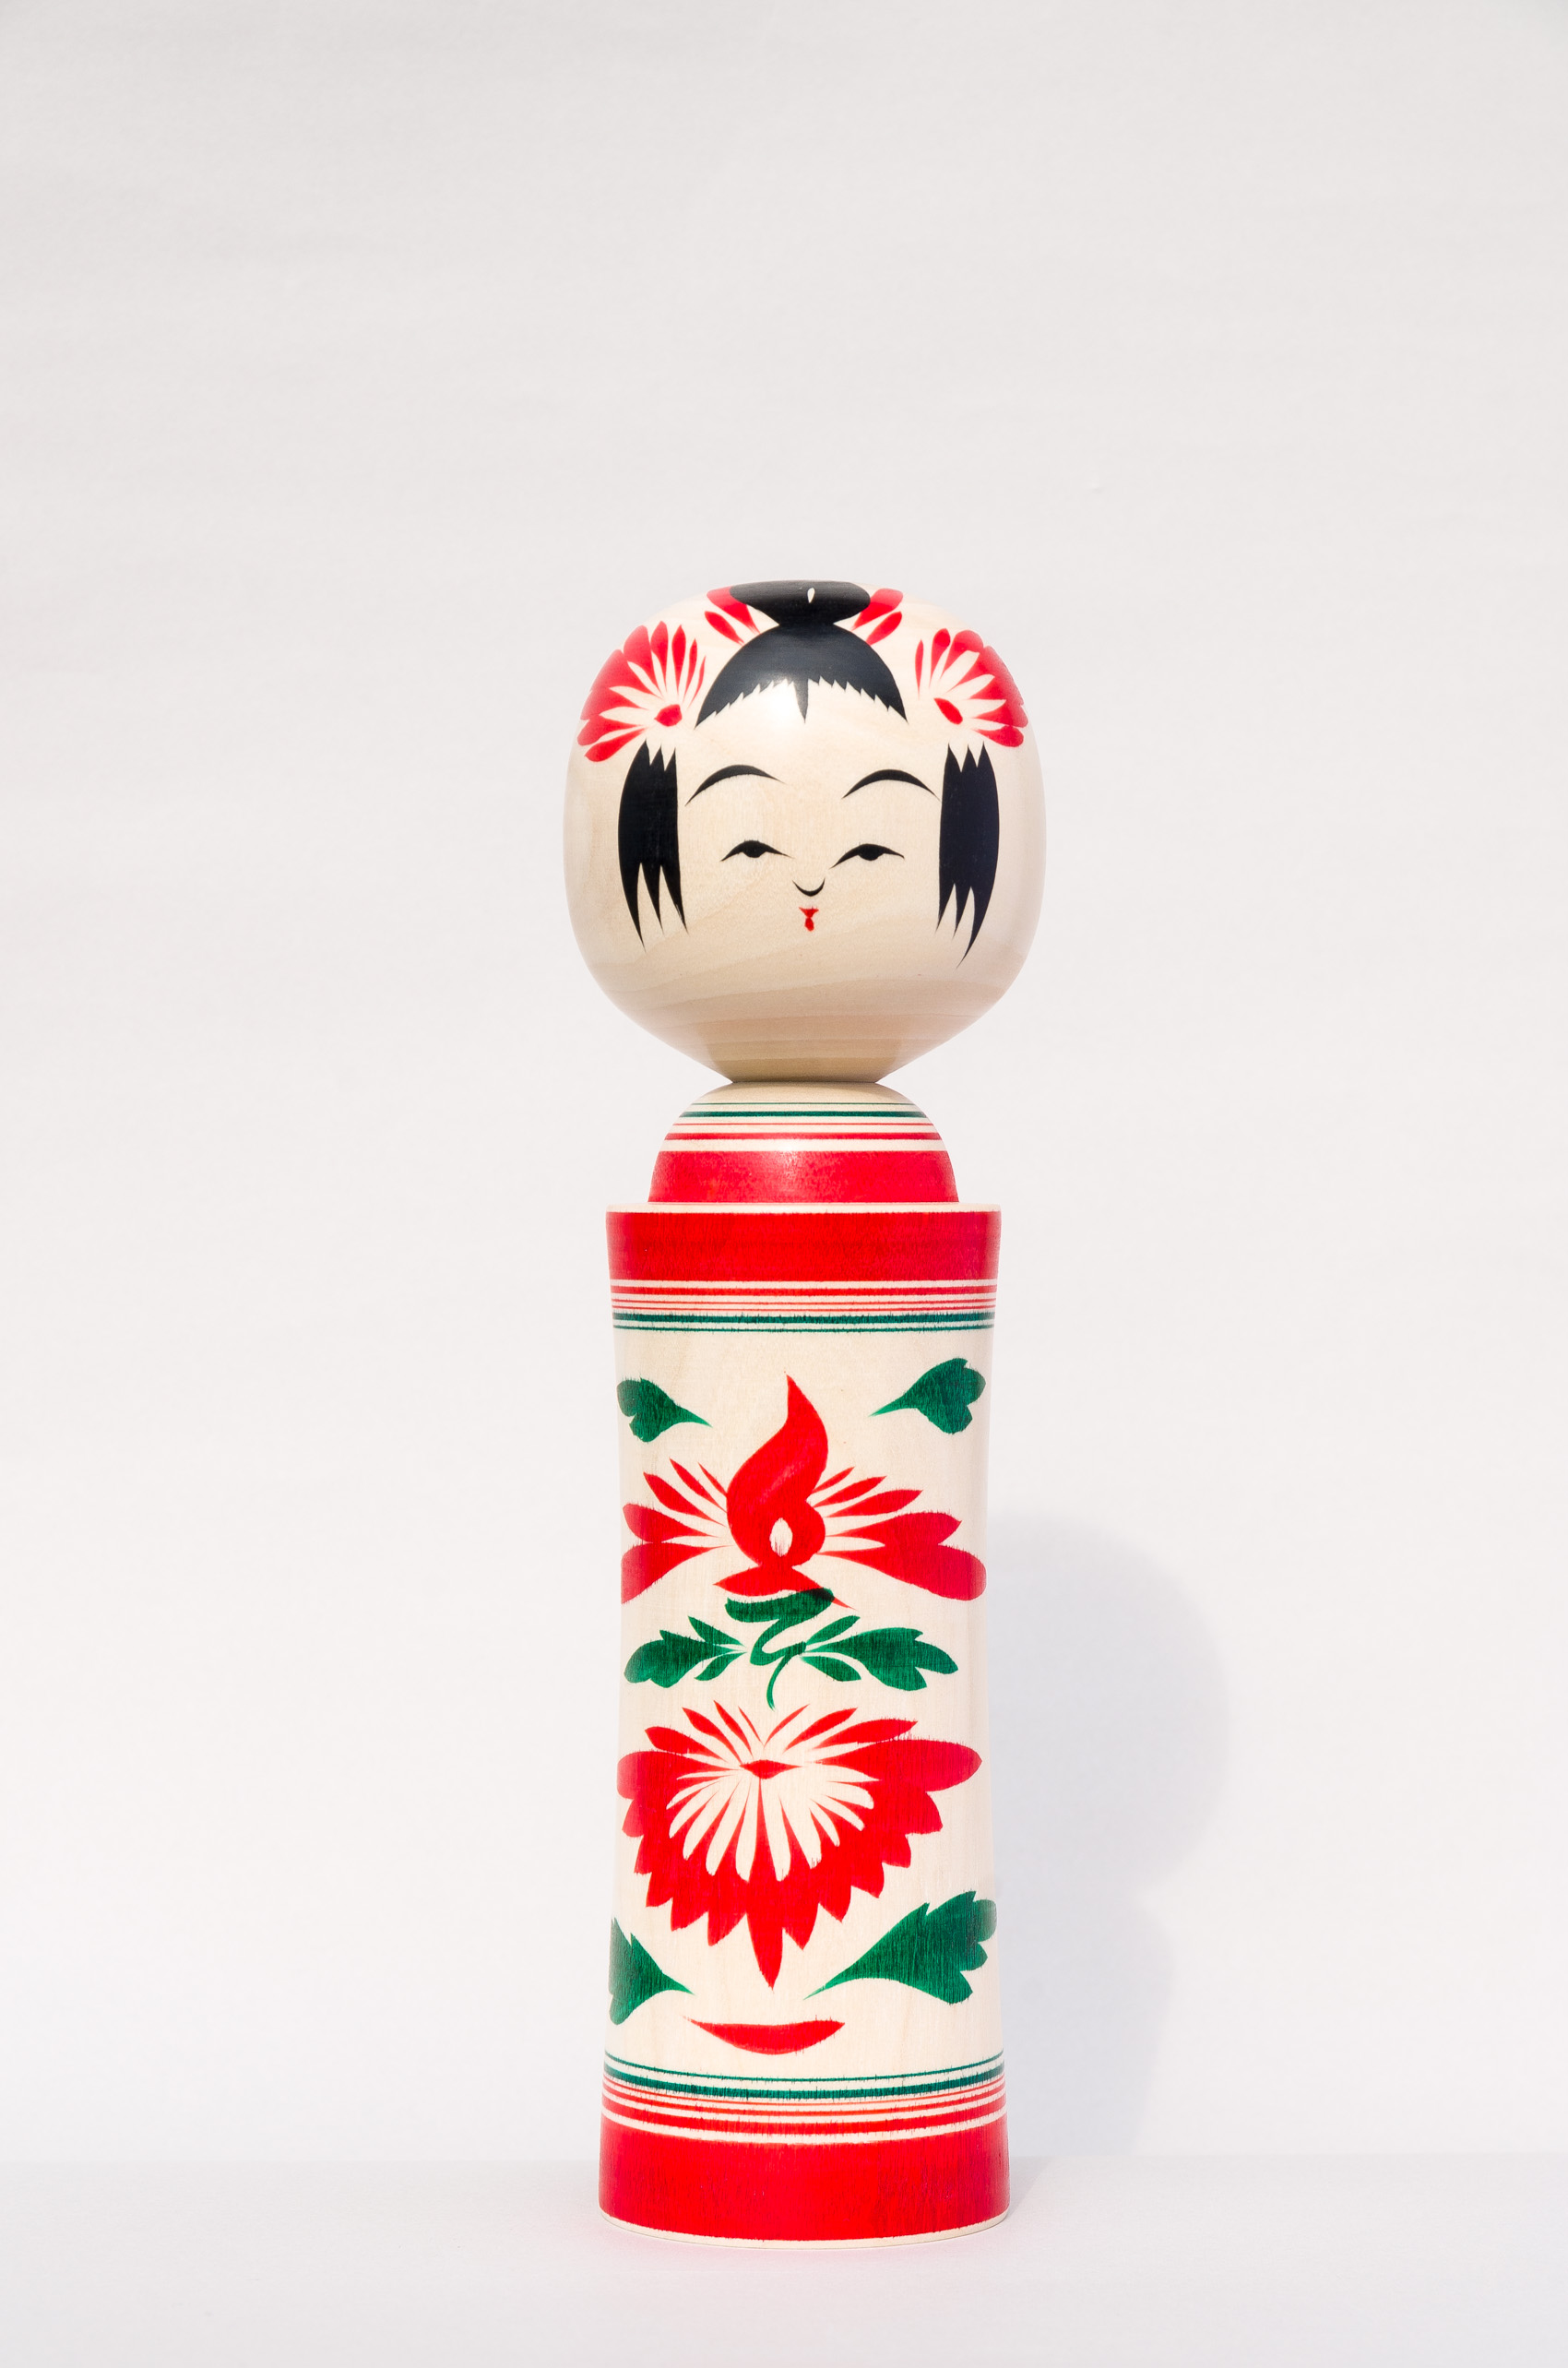 Kokeshi from Japans Tohoku region are at Japan House London. Image by TOHOKU STANDARD